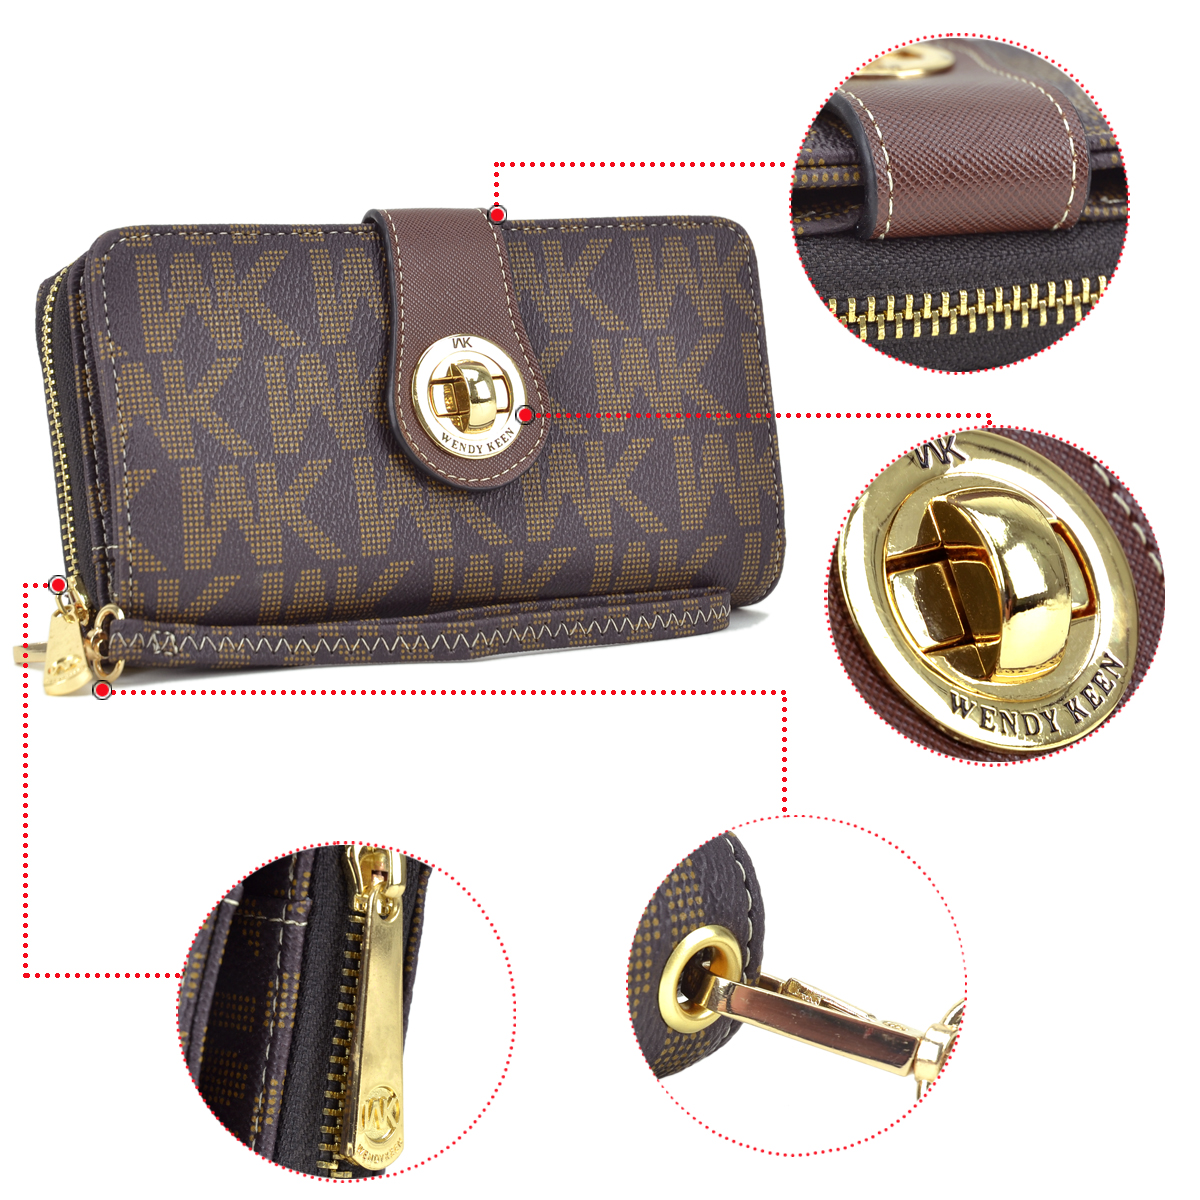 Wendy Keen Monogram Logo Double layer Zip Around and Twist lock Wallet